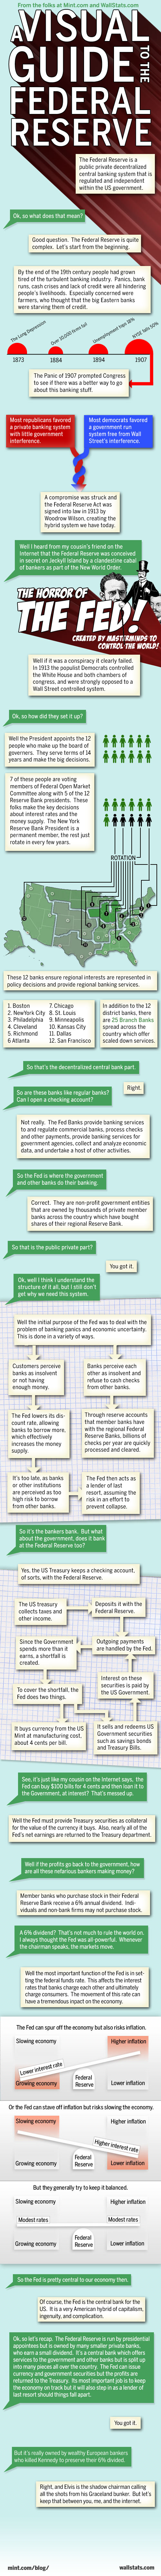 how-the-federal-reserve-system-really-works